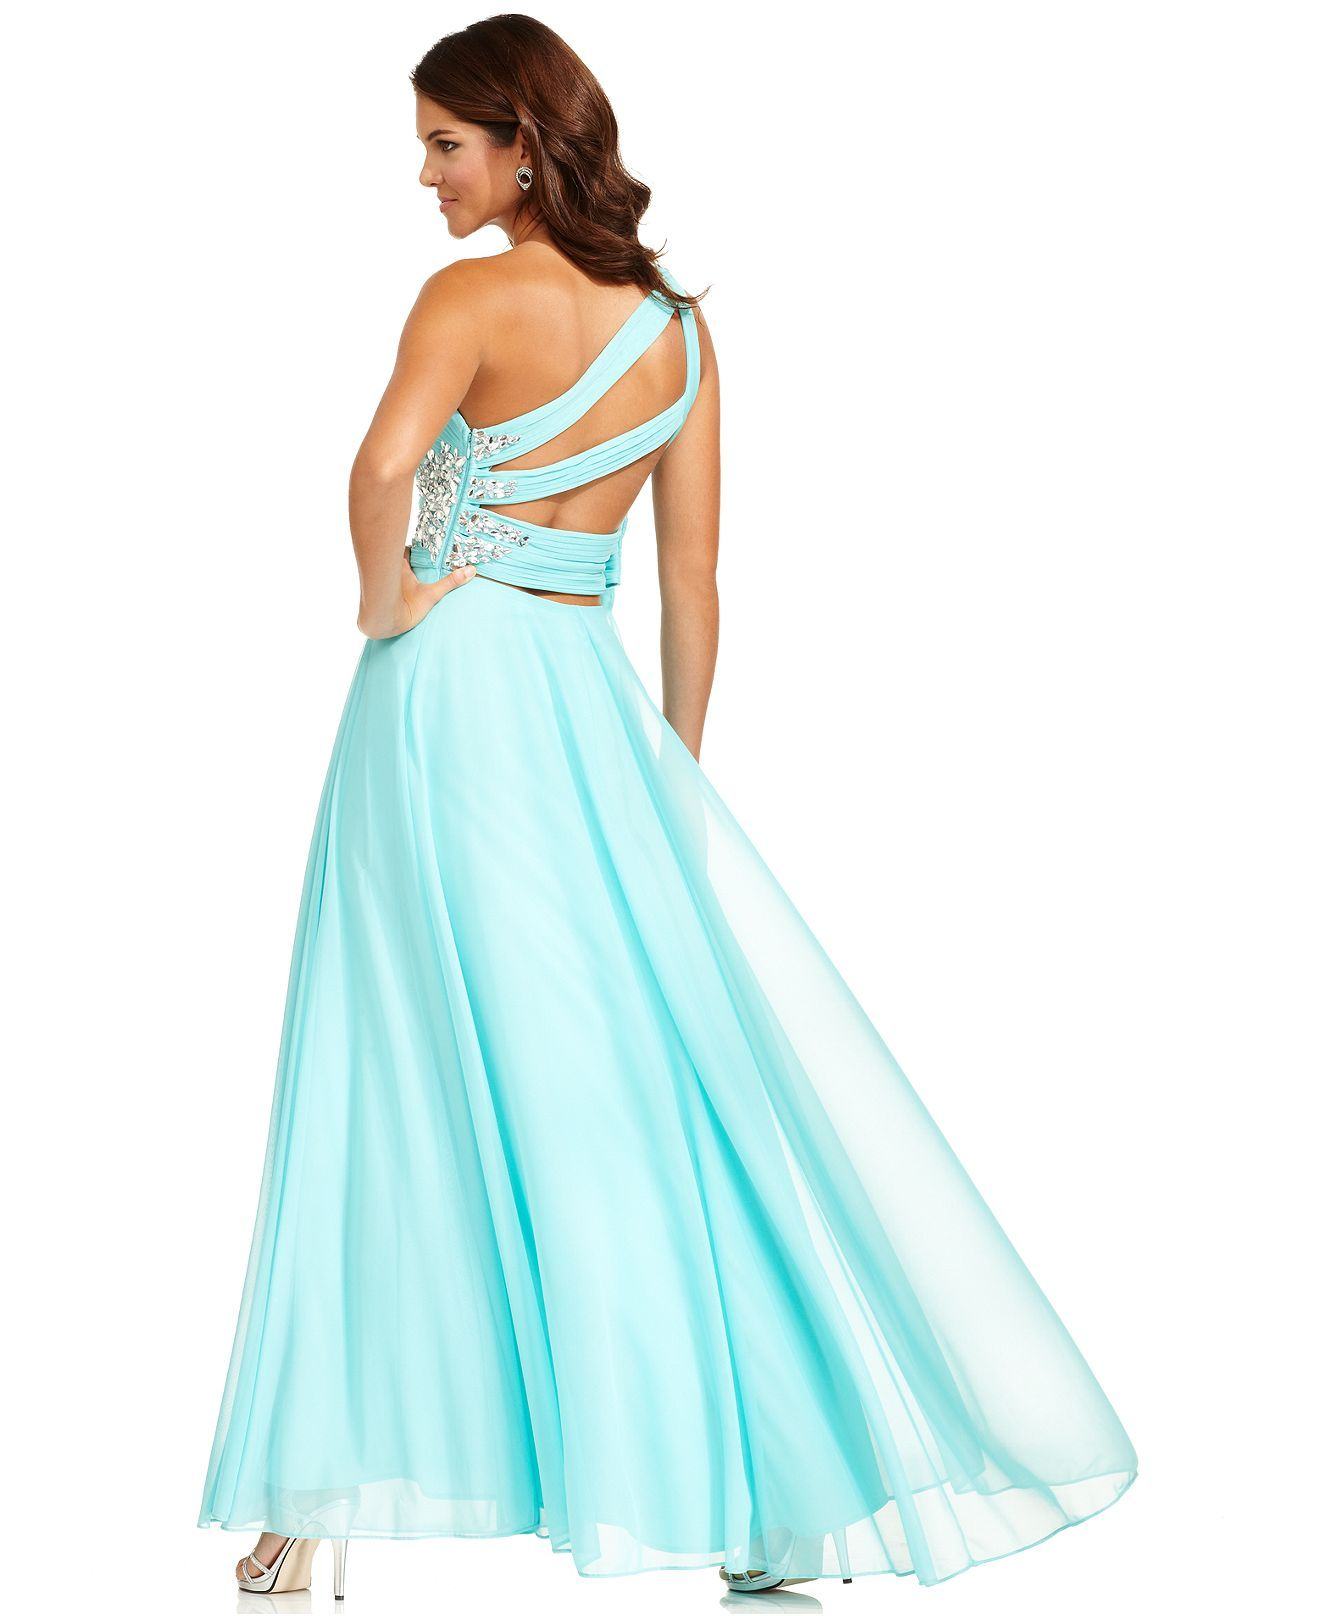 Xscape Dress, Sleeveless One-Shoulder Beaded Gown - Juniors Prom ...